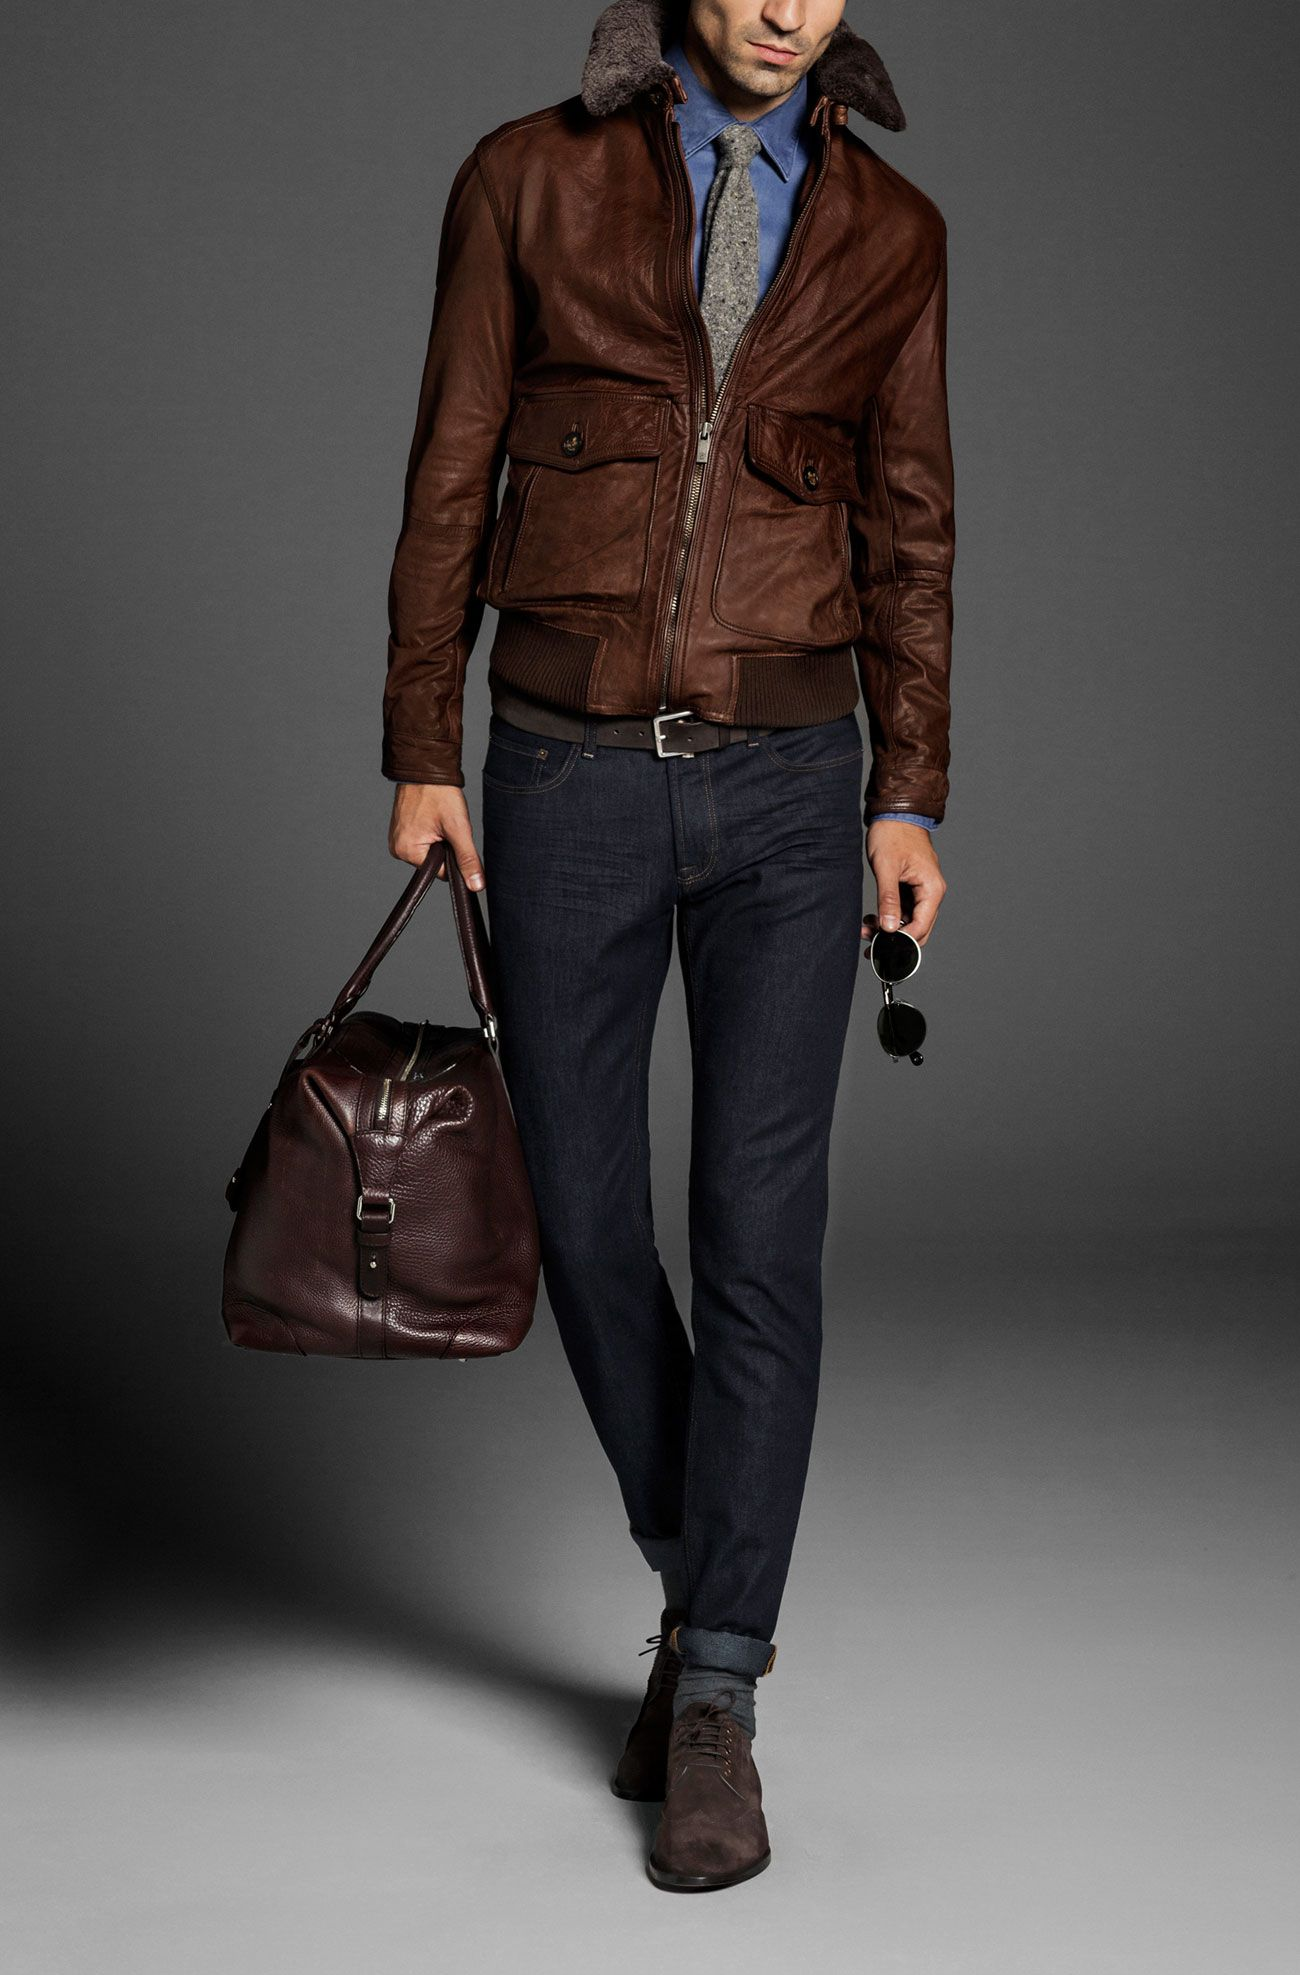 NAPPA JACKET WITH AVIATOR COLLAR Leather jackets MEN